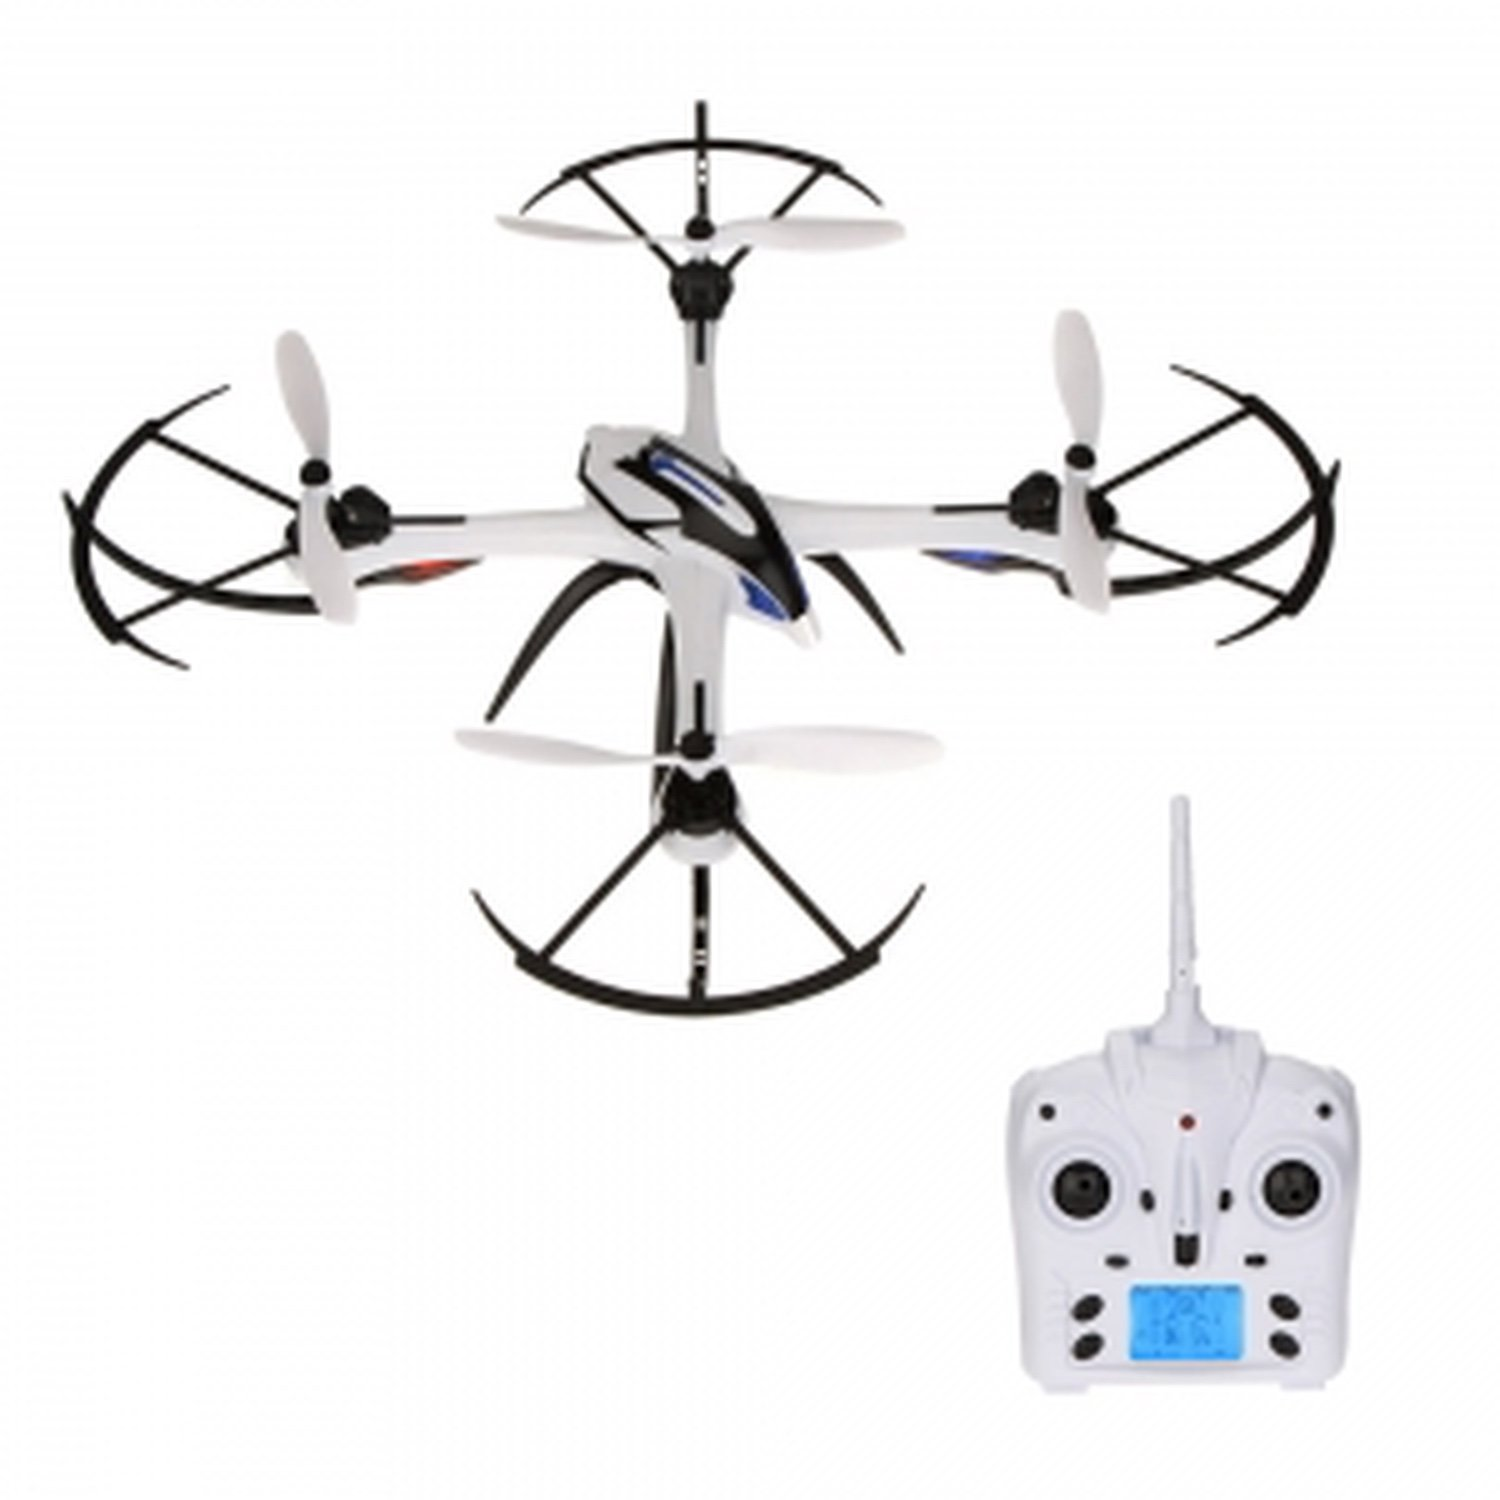 Drone Yizhan Tarantula X6 WHITE 4CH RTF 2.4GHz with SYSTEM HEADLESS (without camera) стоимость